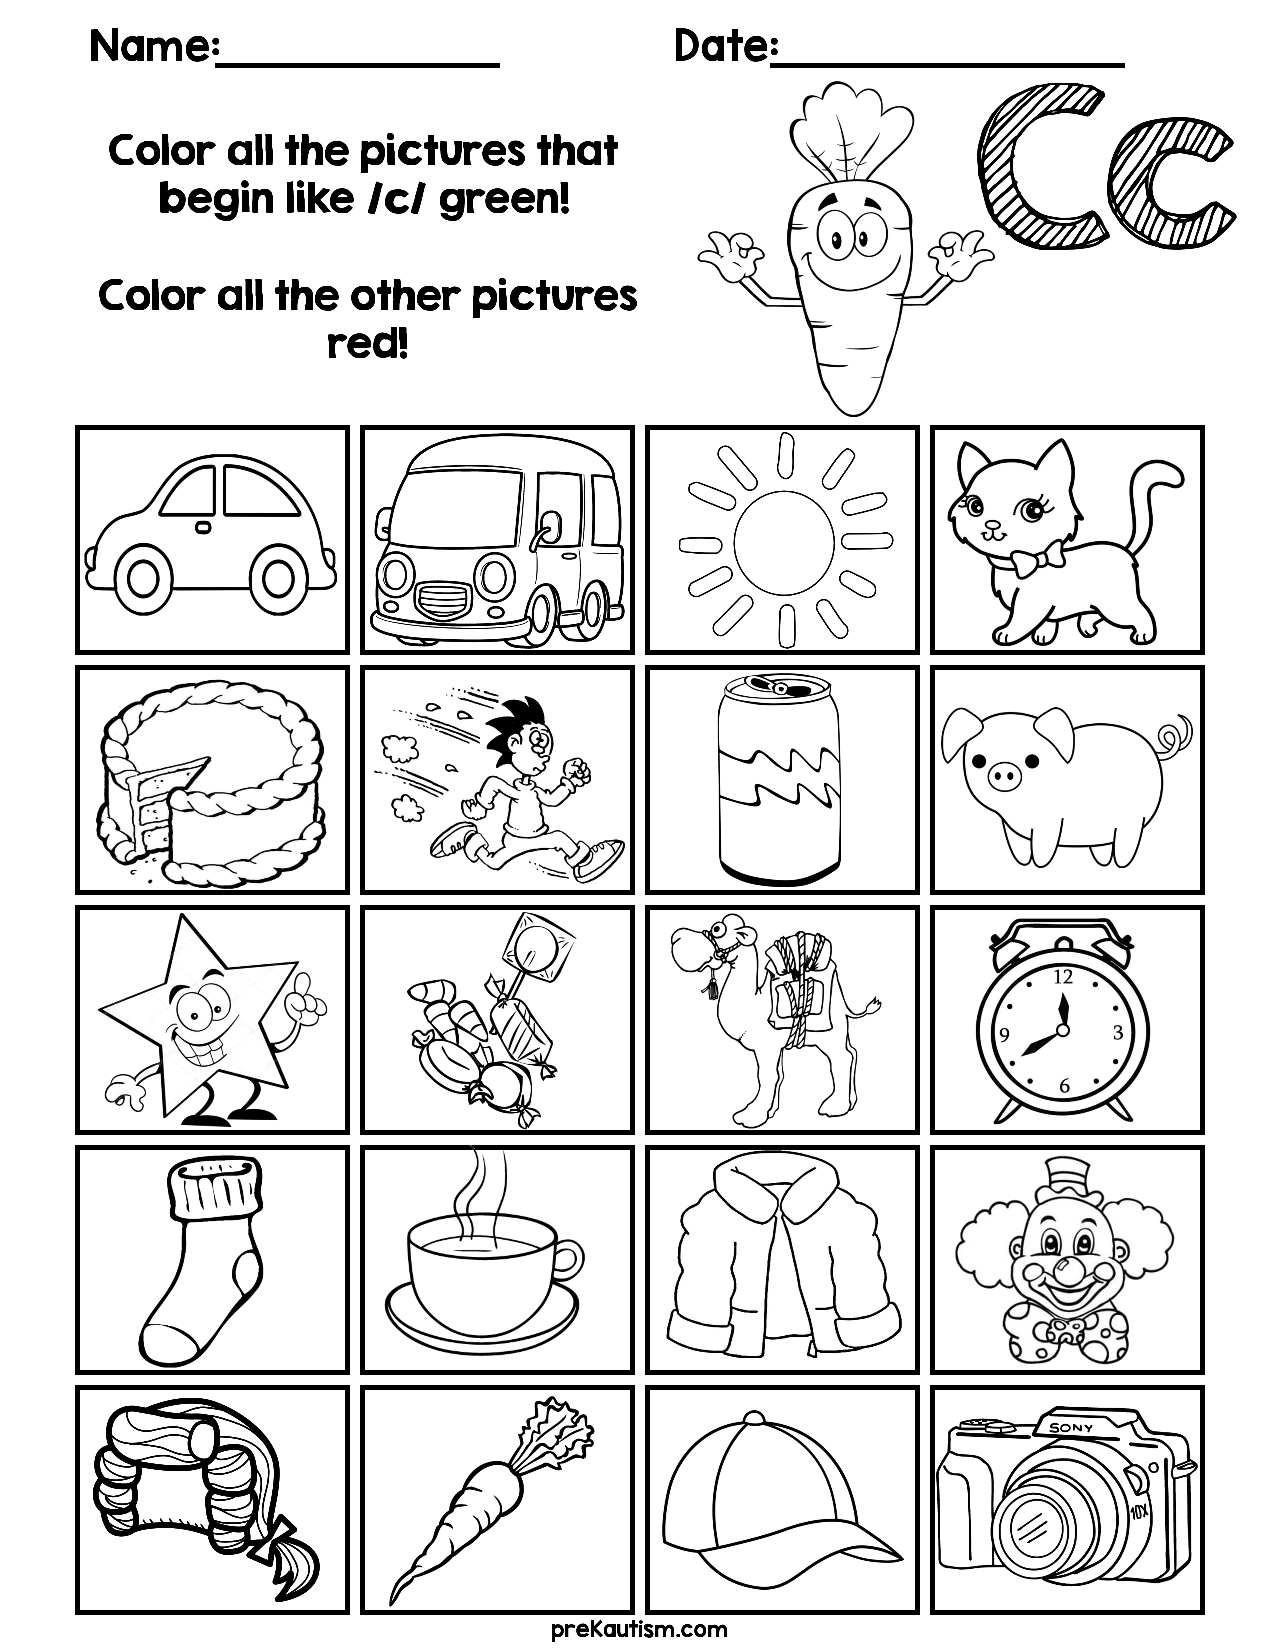 Find & Color Consonants Worksheets Grade r worksheets